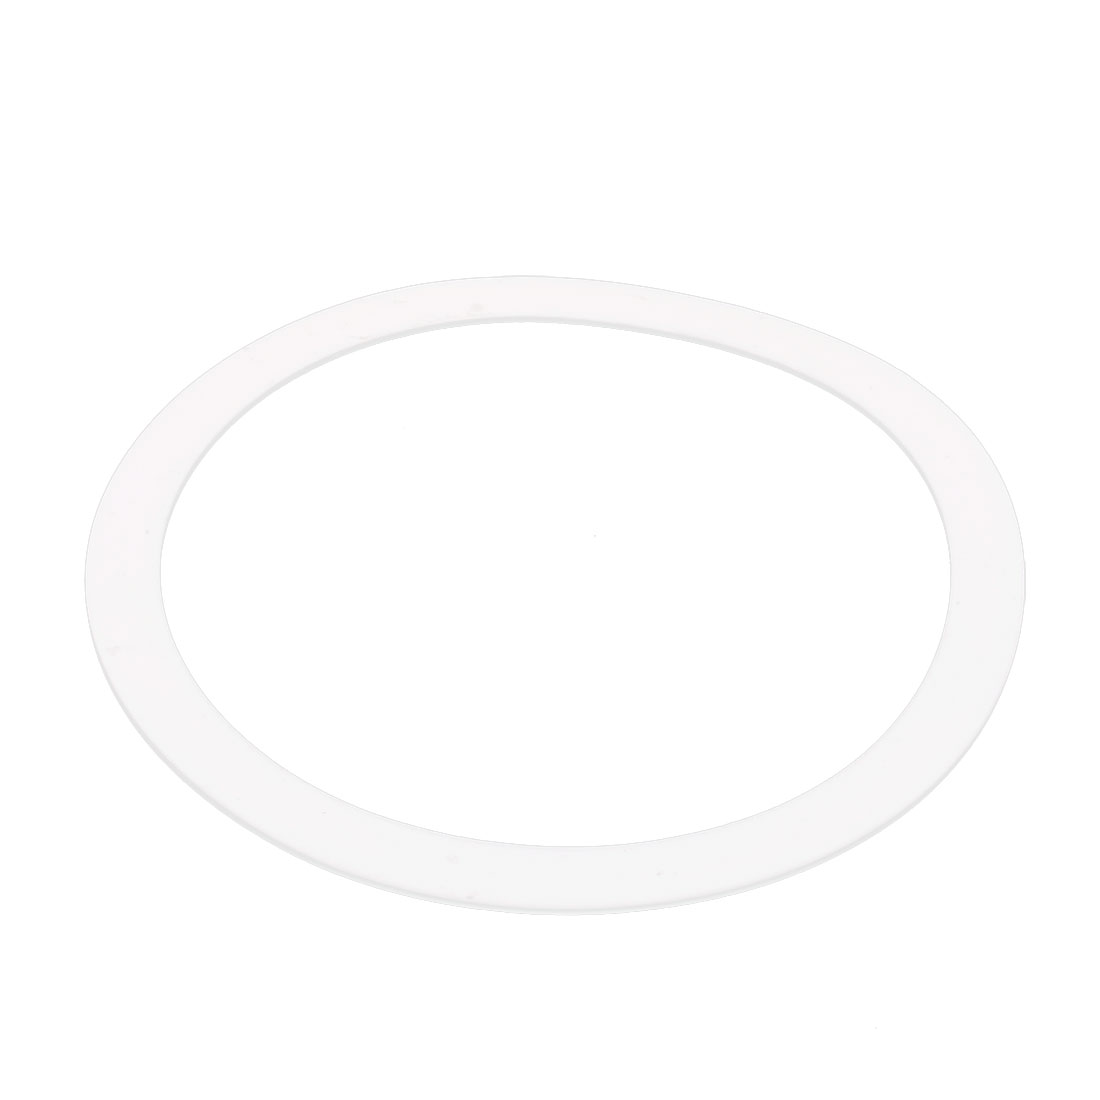 DN250 320mm x 273mm x 3mm PTFE Flange Gasket Sanitary Pipe Fitting Ferrule White